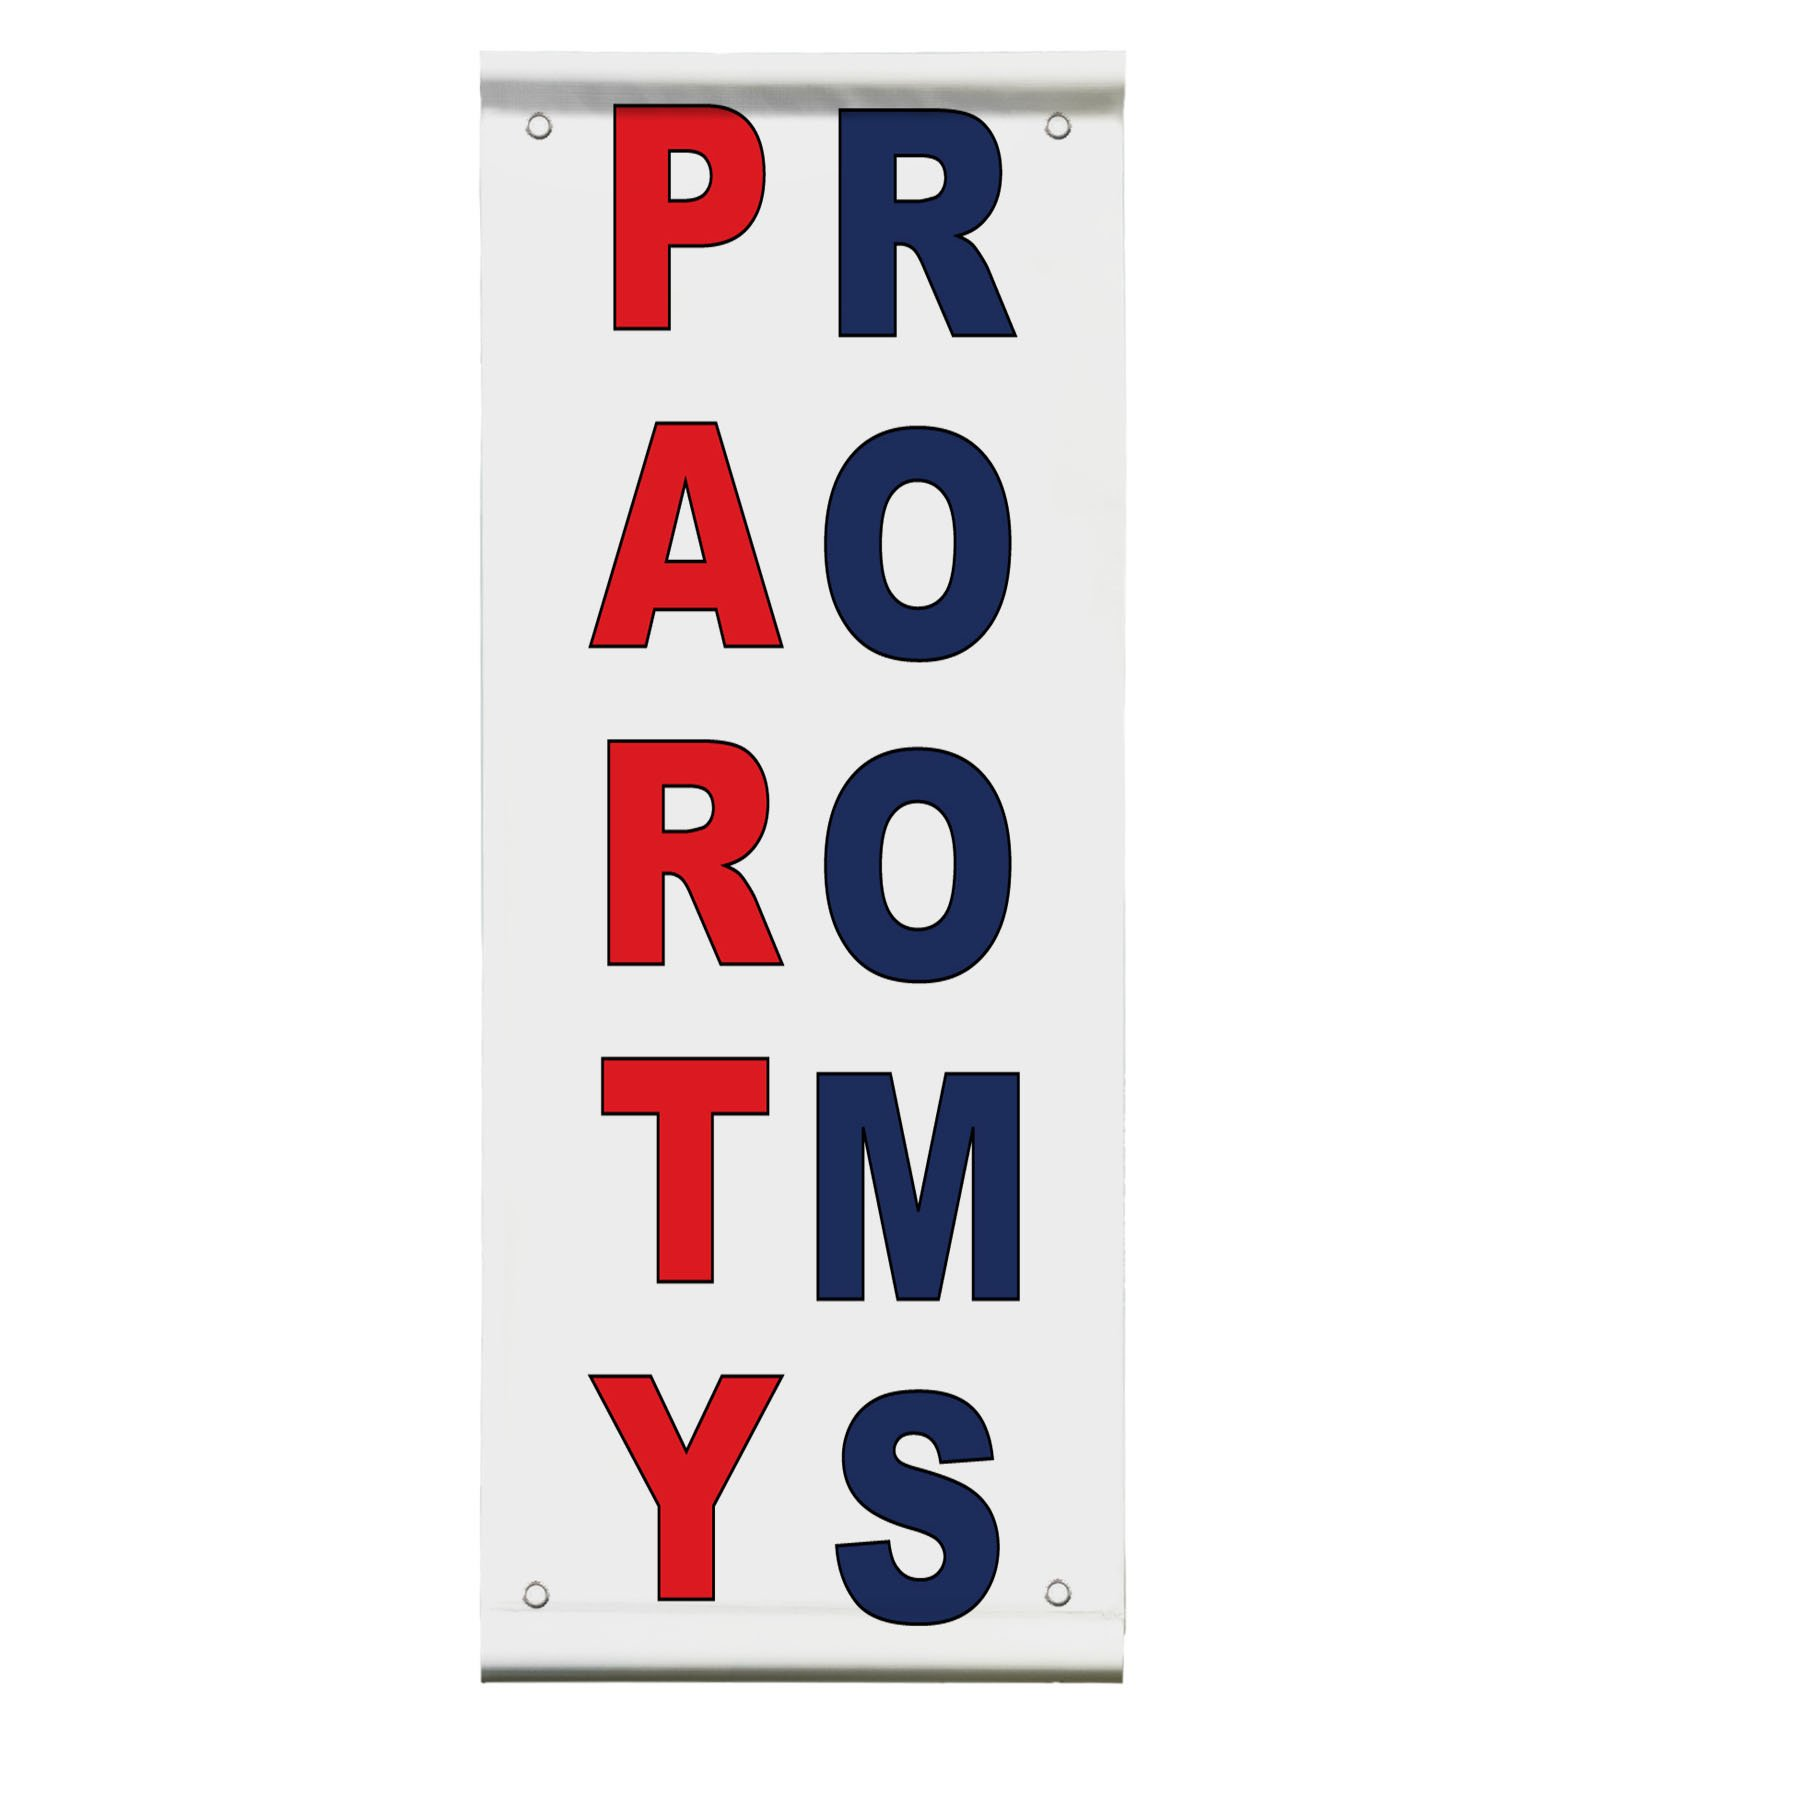 Party Rooms Red Blue Double Sided Vertical Pole Banner Sign 24 in x 48 in w/ Pole Bracket